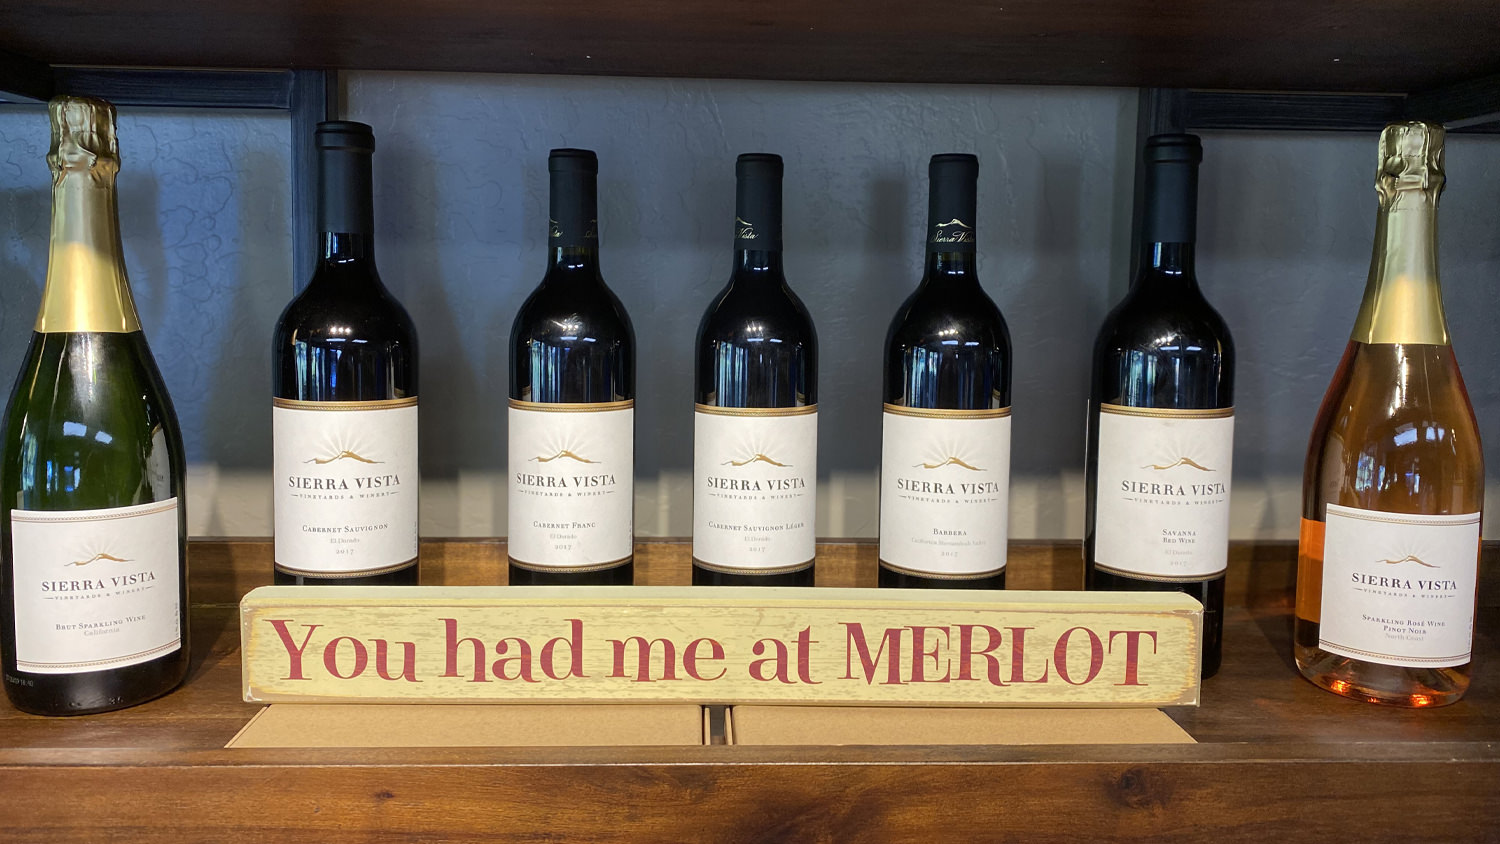 Sierra Vista Tasting Room You Had Me at MERLOT